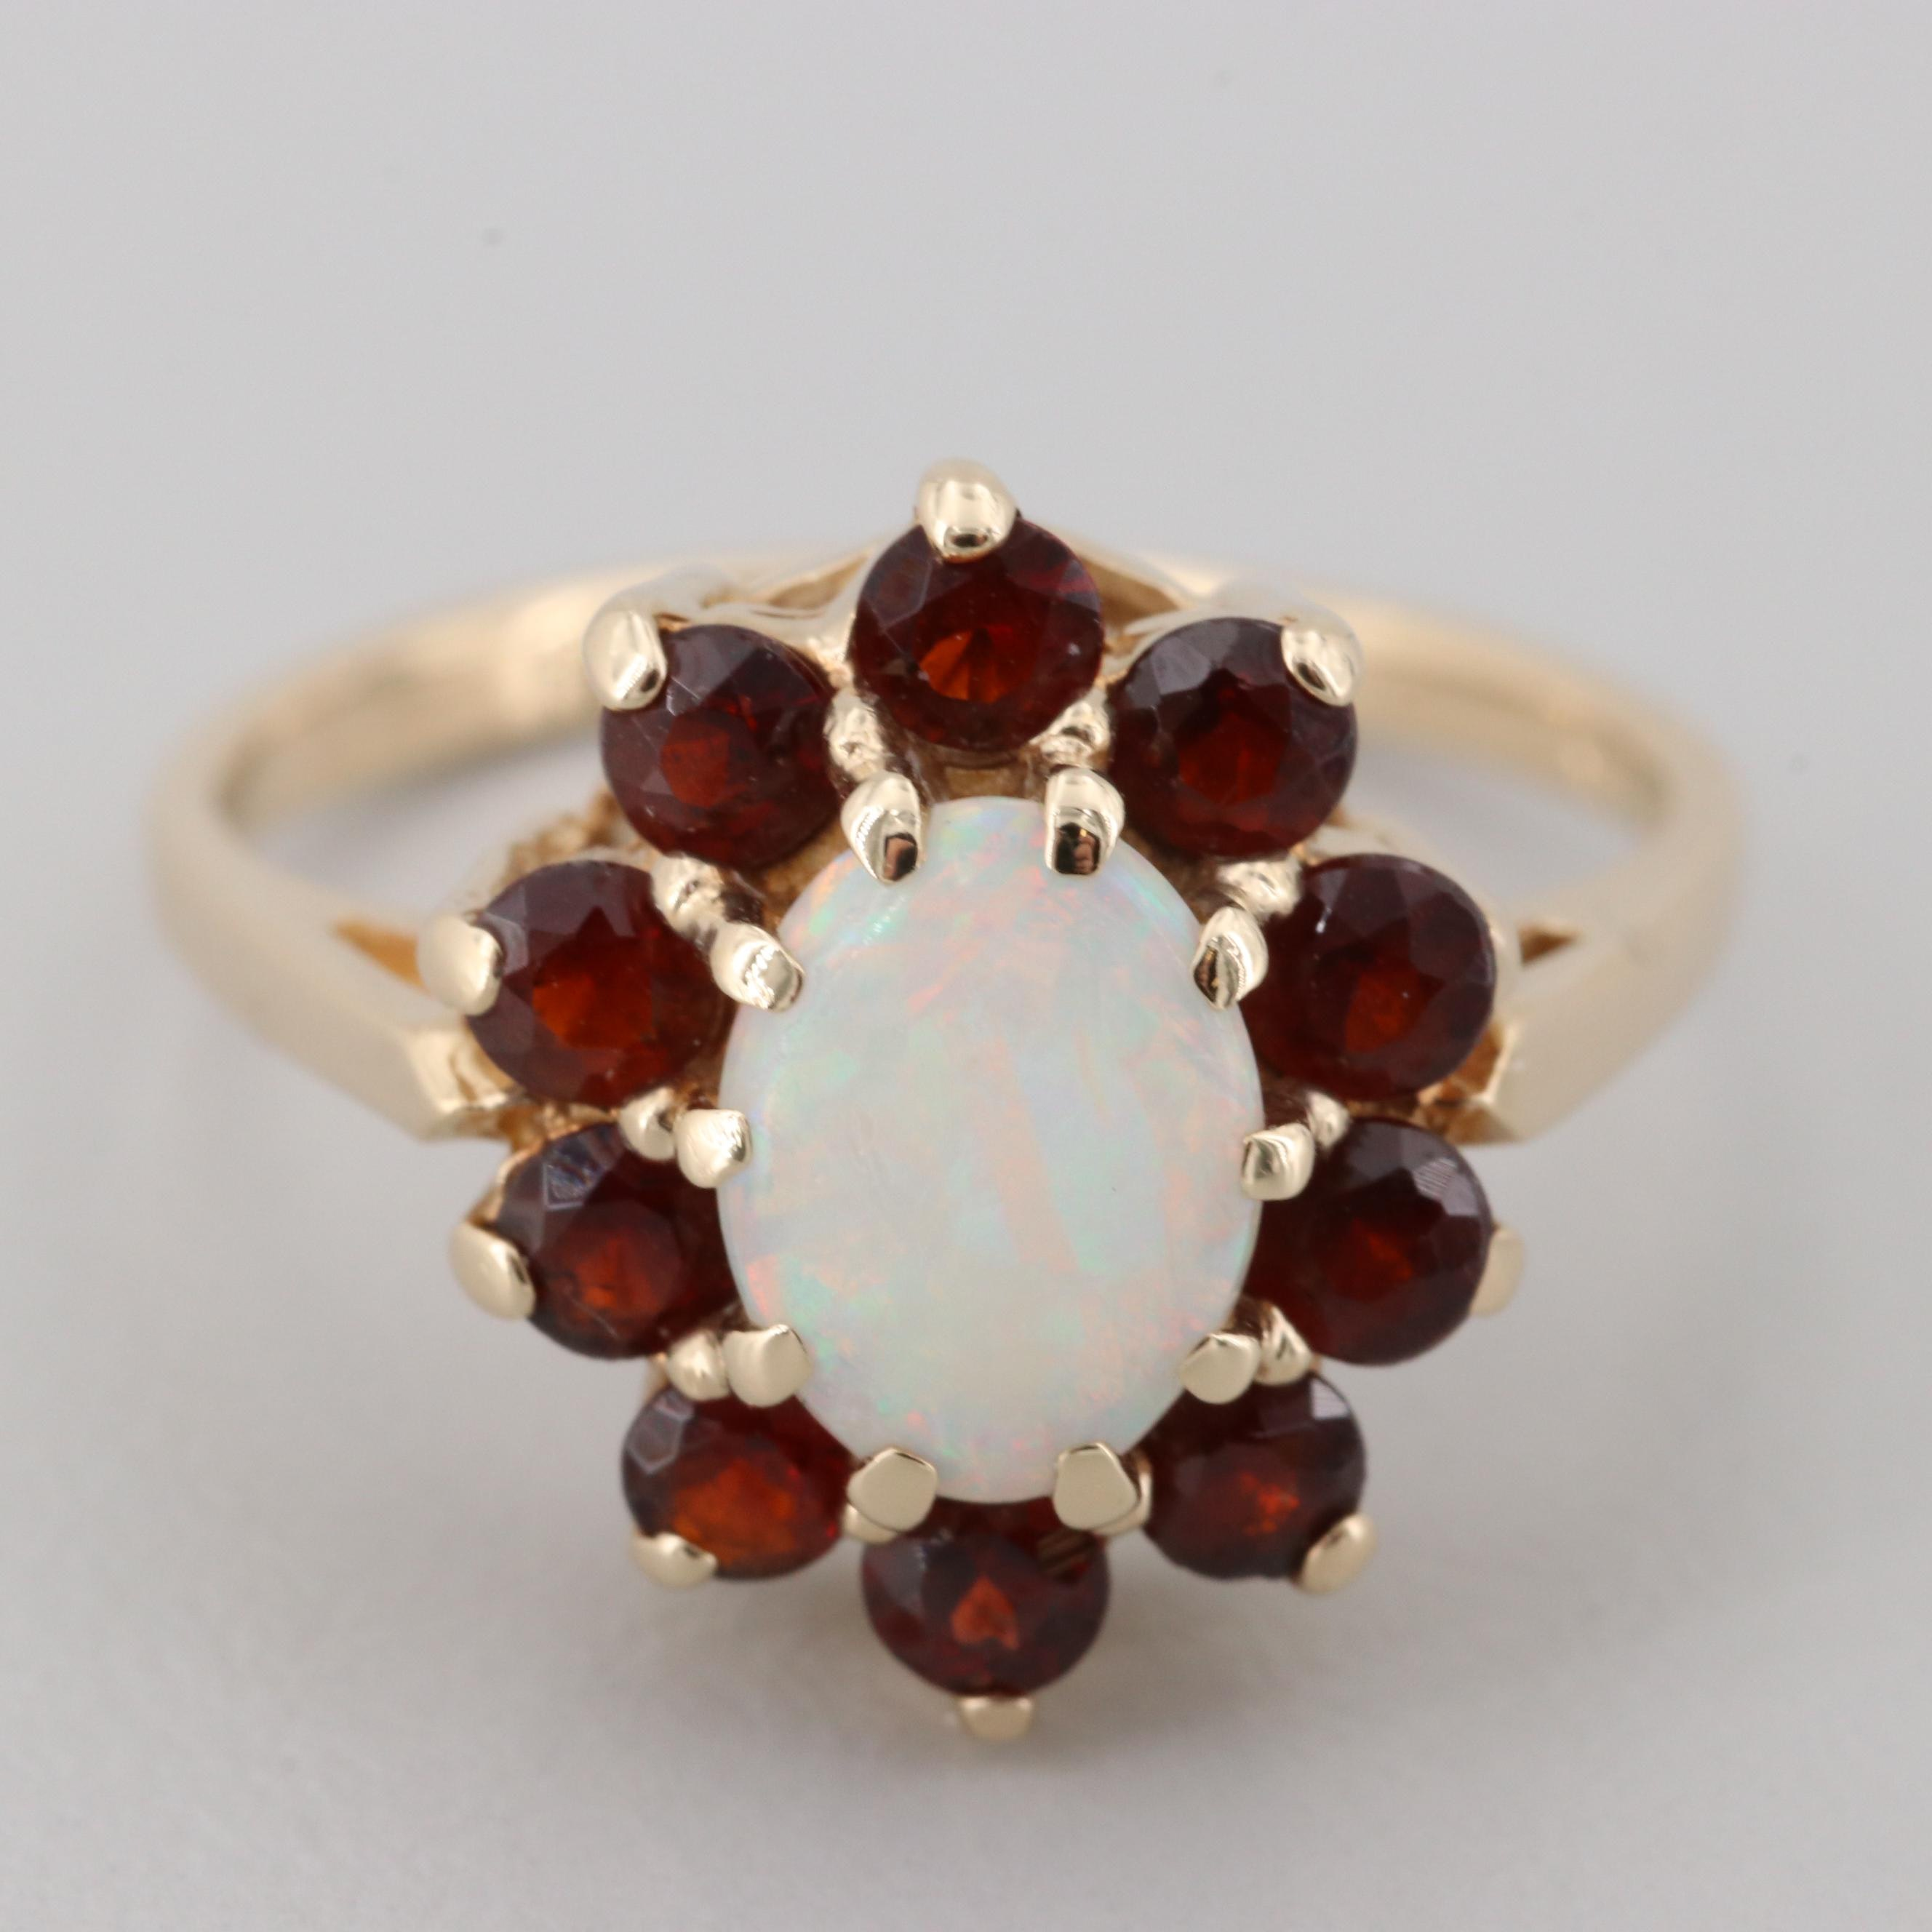 14K Yellow Gold Opal and Garnet Ring